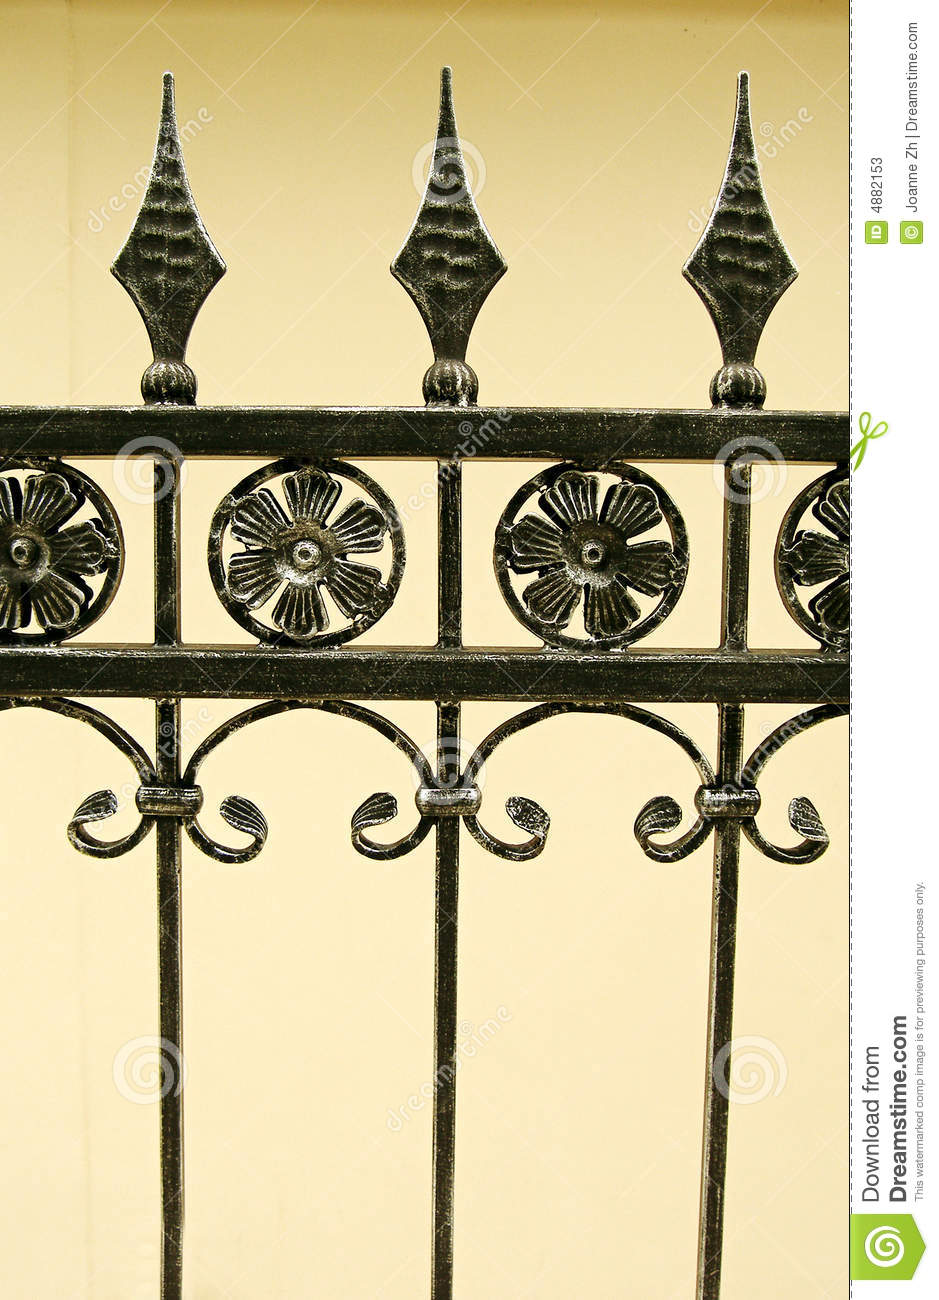 Black Metal Flower Wall Decor - Home Decor